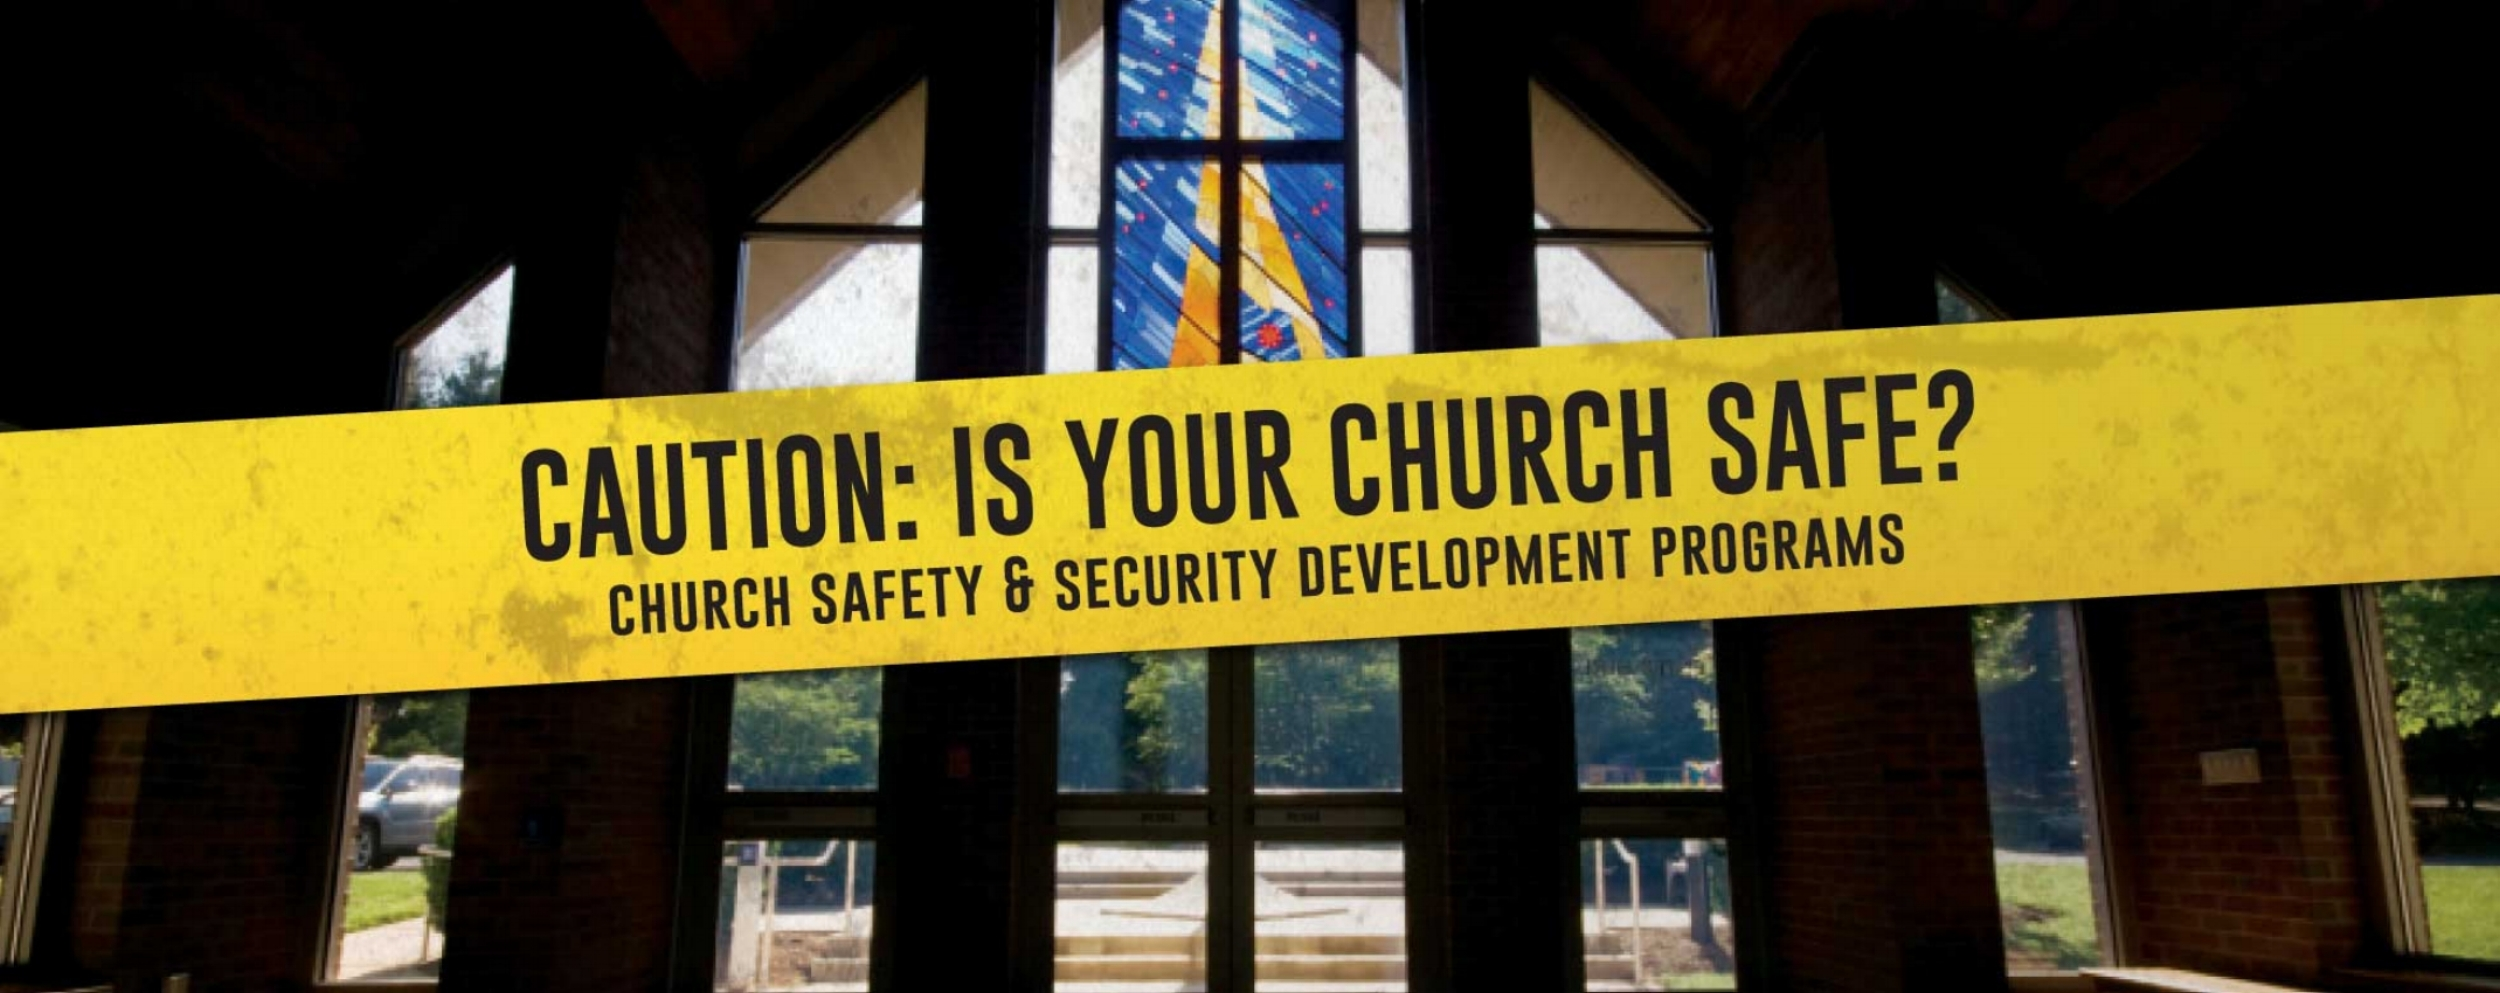 CHURCH-SECURITY.jpg